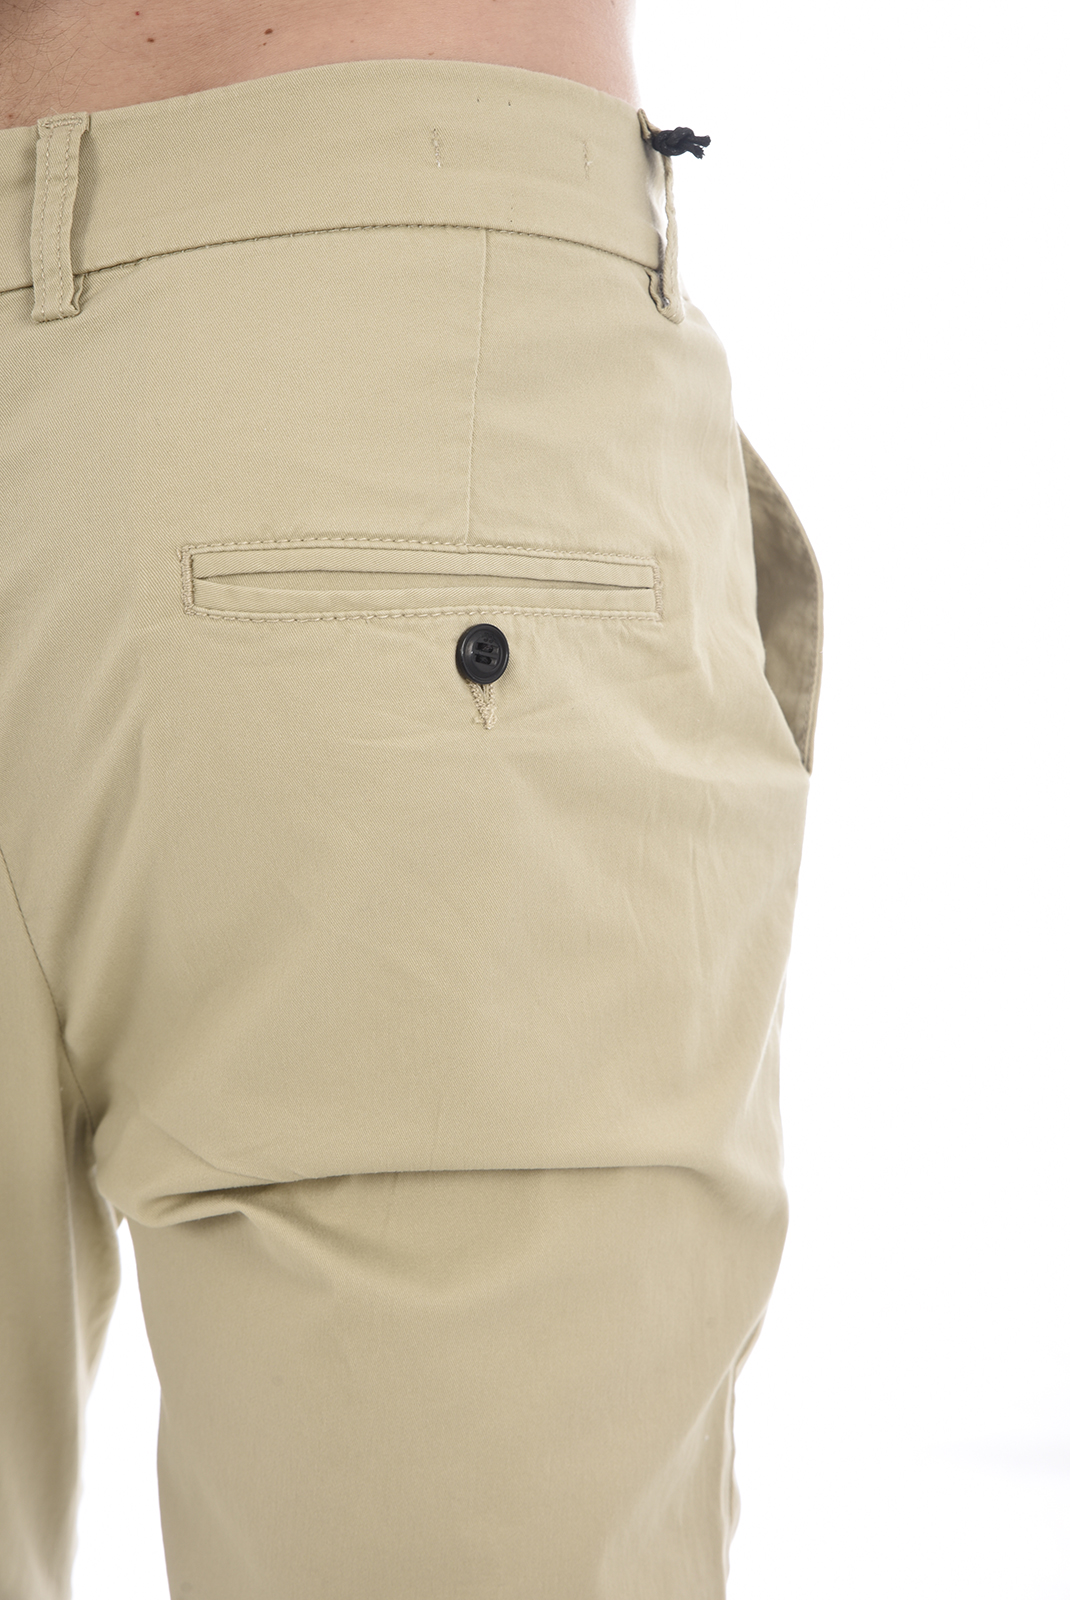 Jack And Jones Pantalon Beige Anti Fit Stretch Robert